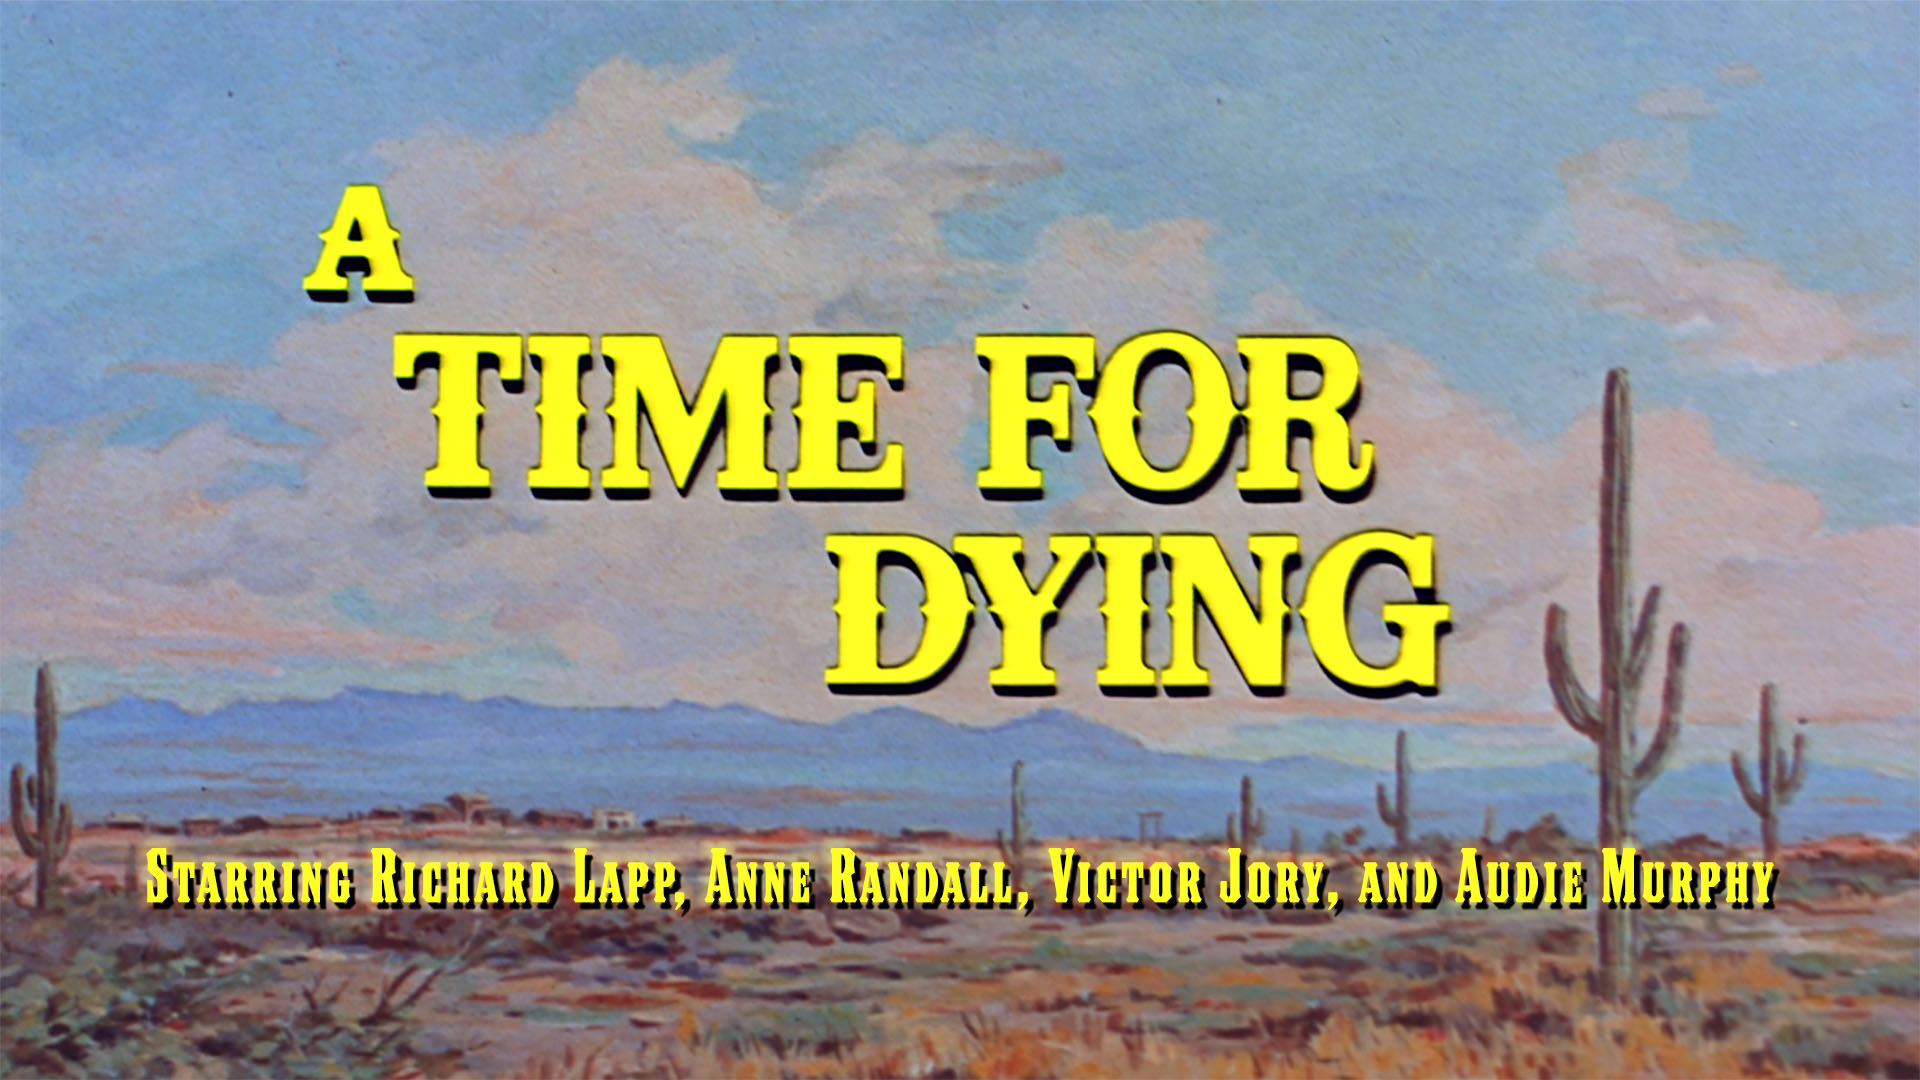 A Time For Dying on Amazon